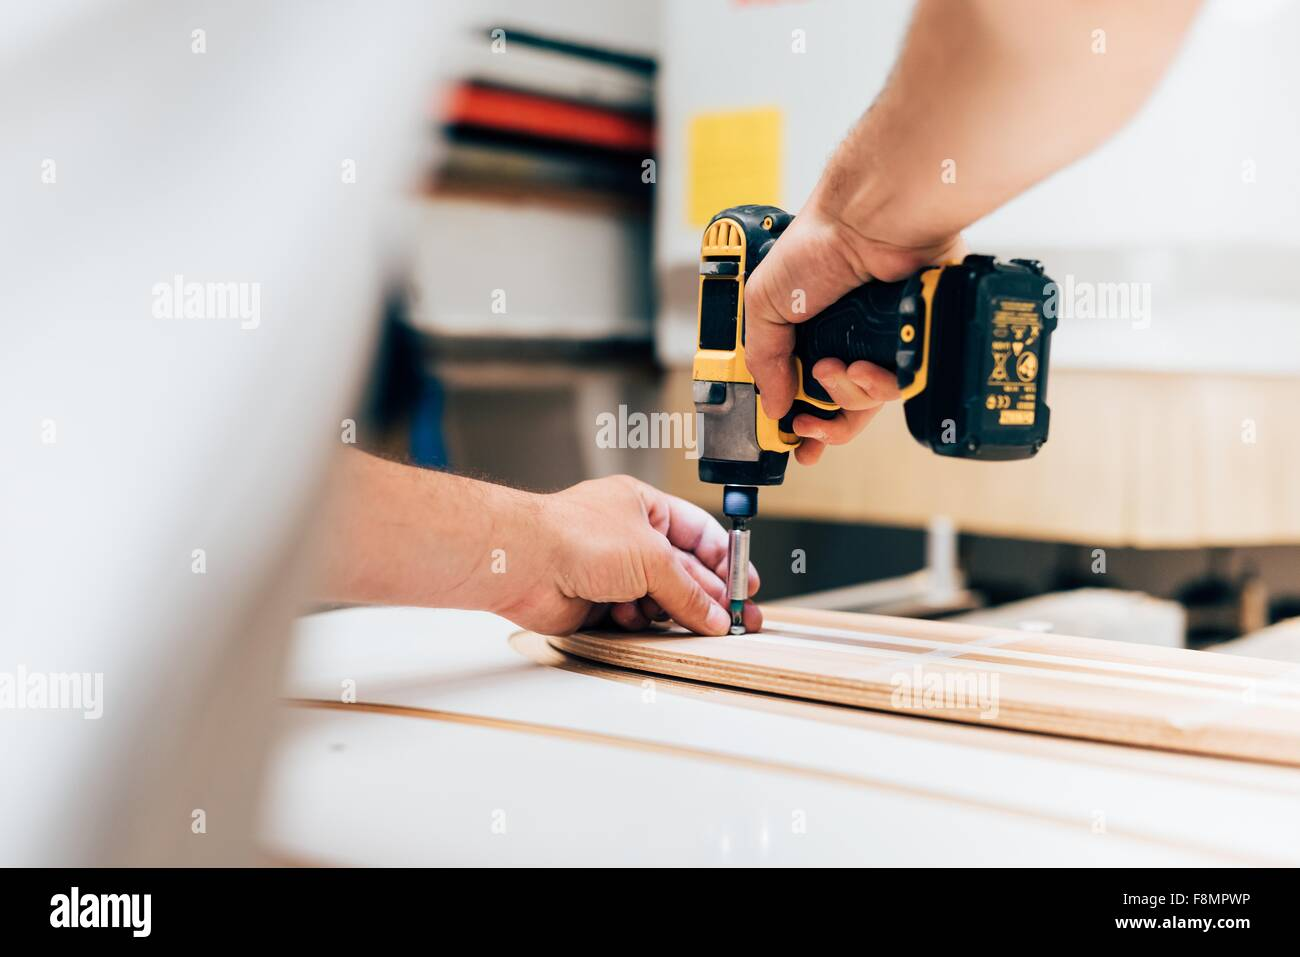 Cropped view of young man in carpentry workshop using cordless screwdriver, screwing into plywood - Stock Image